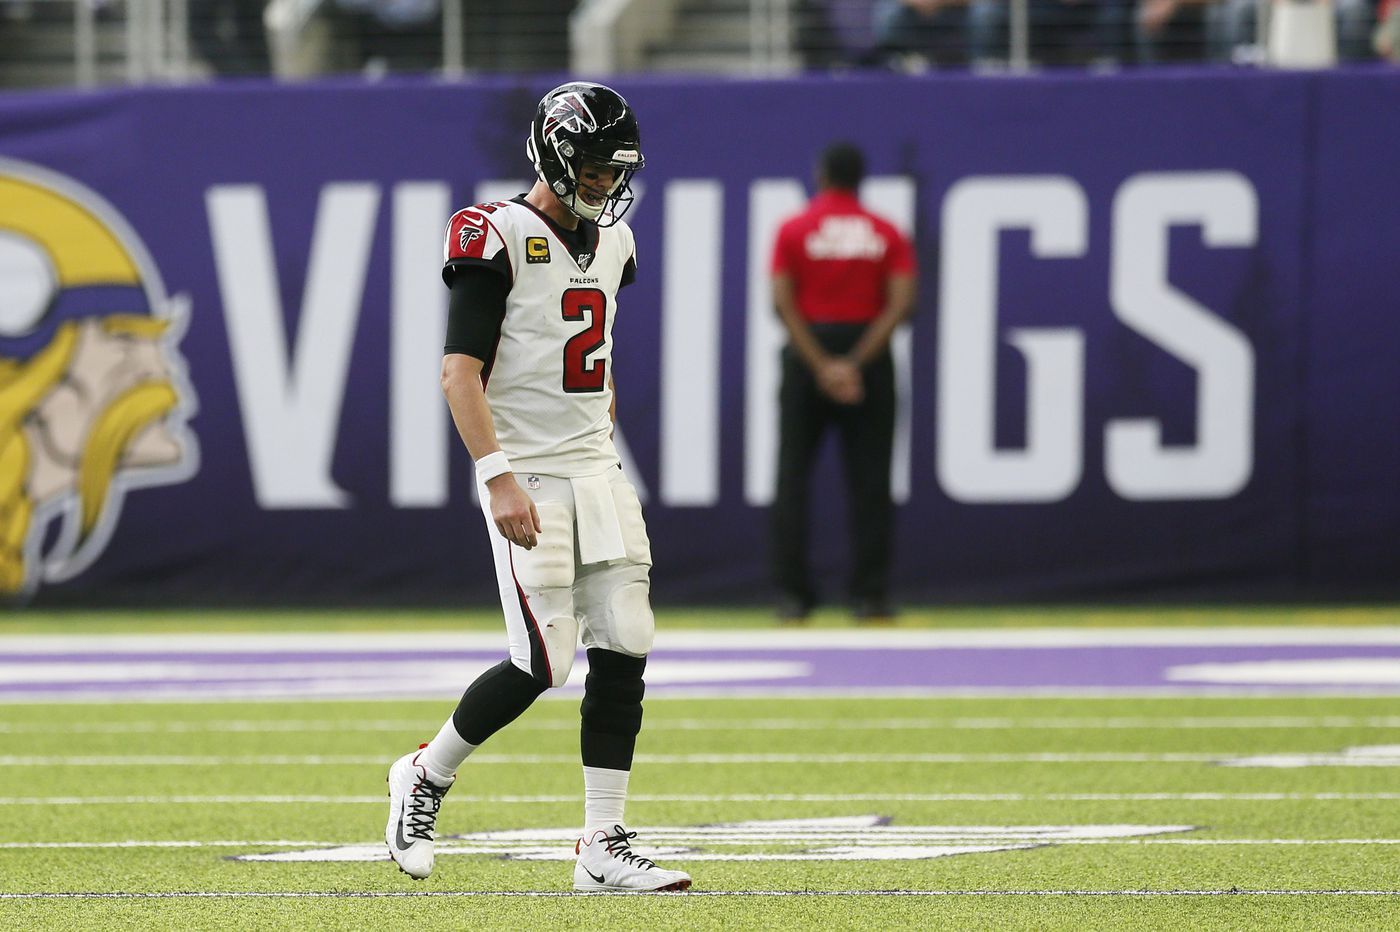 Eagles have made Falcons QB Matt Ryan, a future Hall of Famer, look ordinary. Here's how | Paul Domowitch